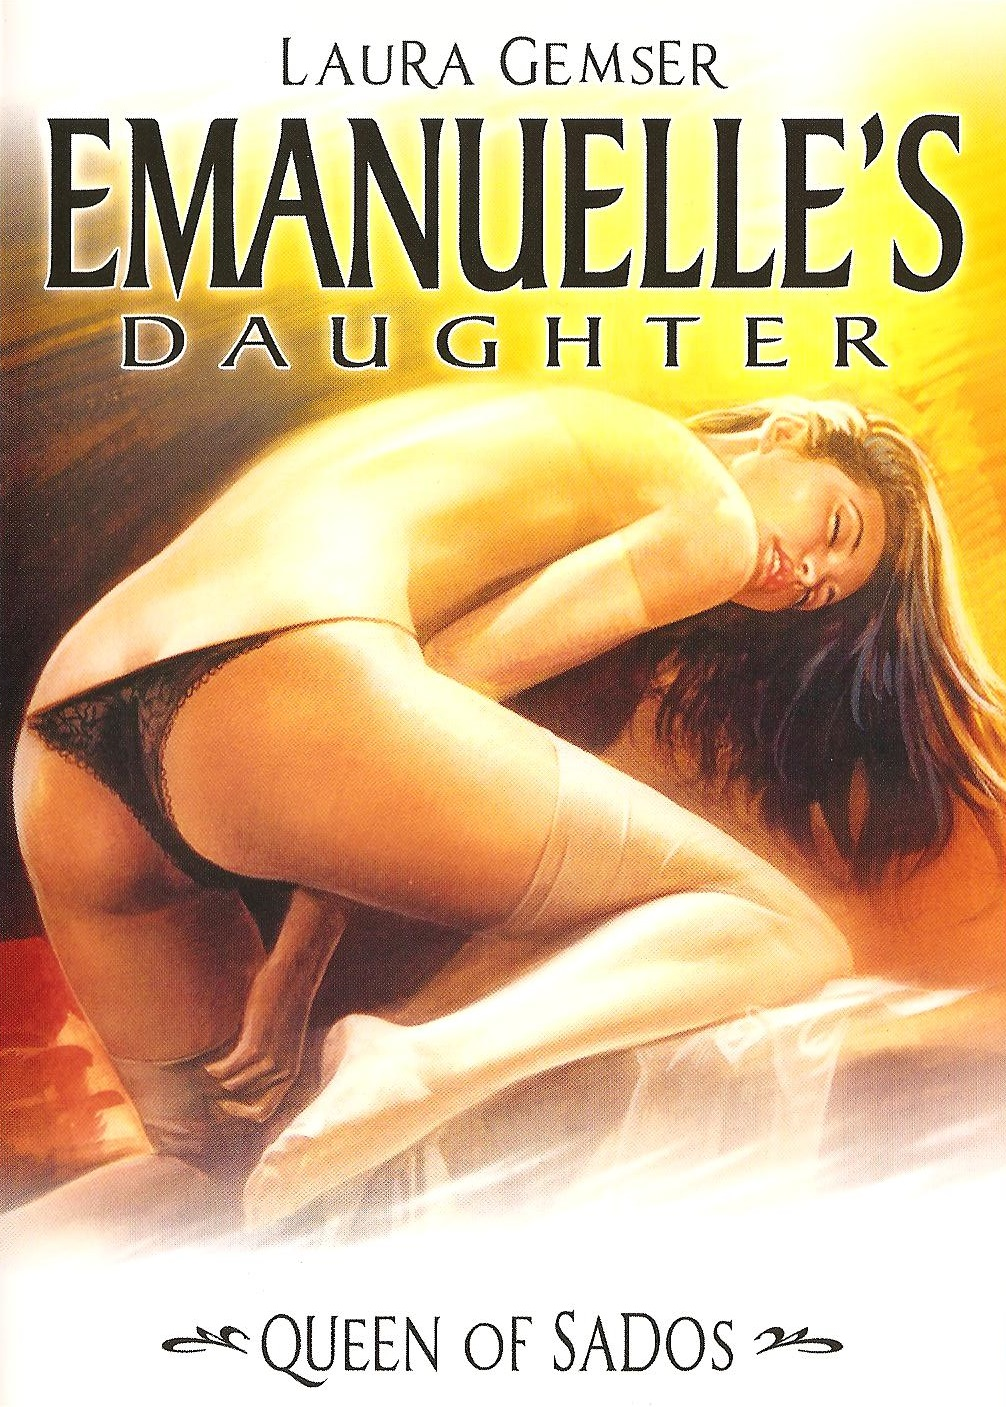 Emmanuelle Queen of sados (1980)